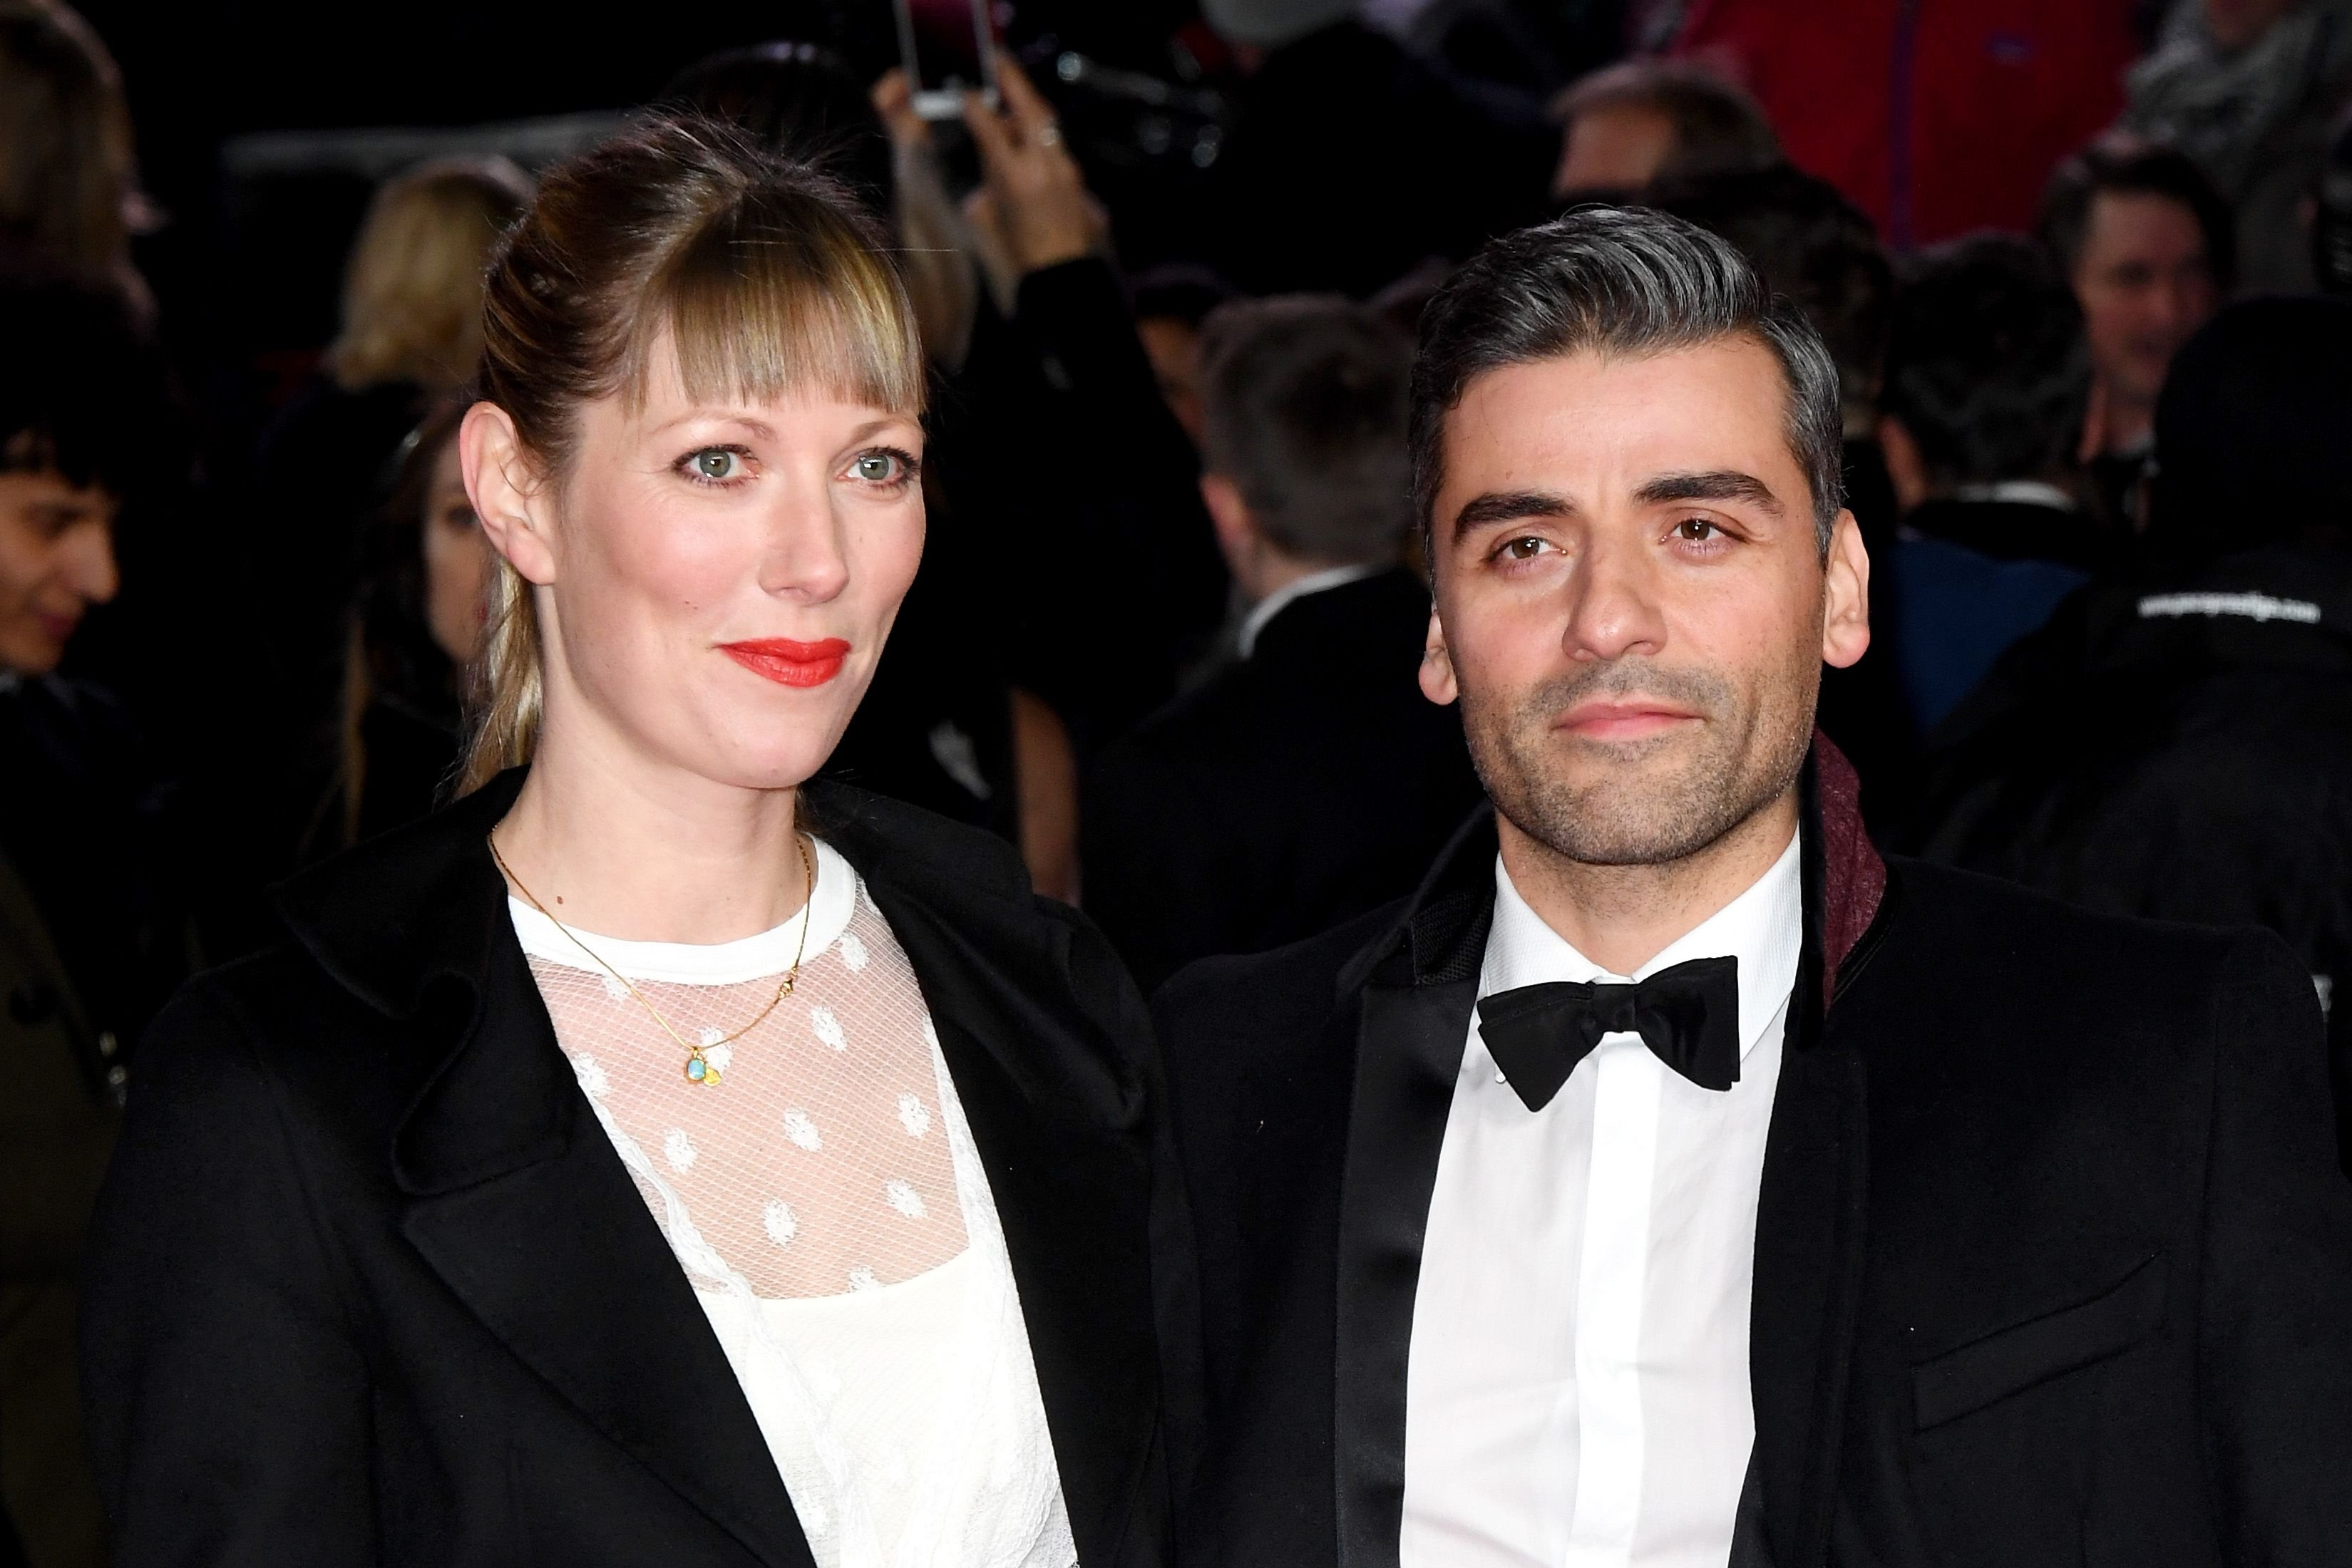 """Oscar Isaac and director Elvira Lind at the premiere of """"Star Wars: The Last Jedi"""" in December 2017 in London 